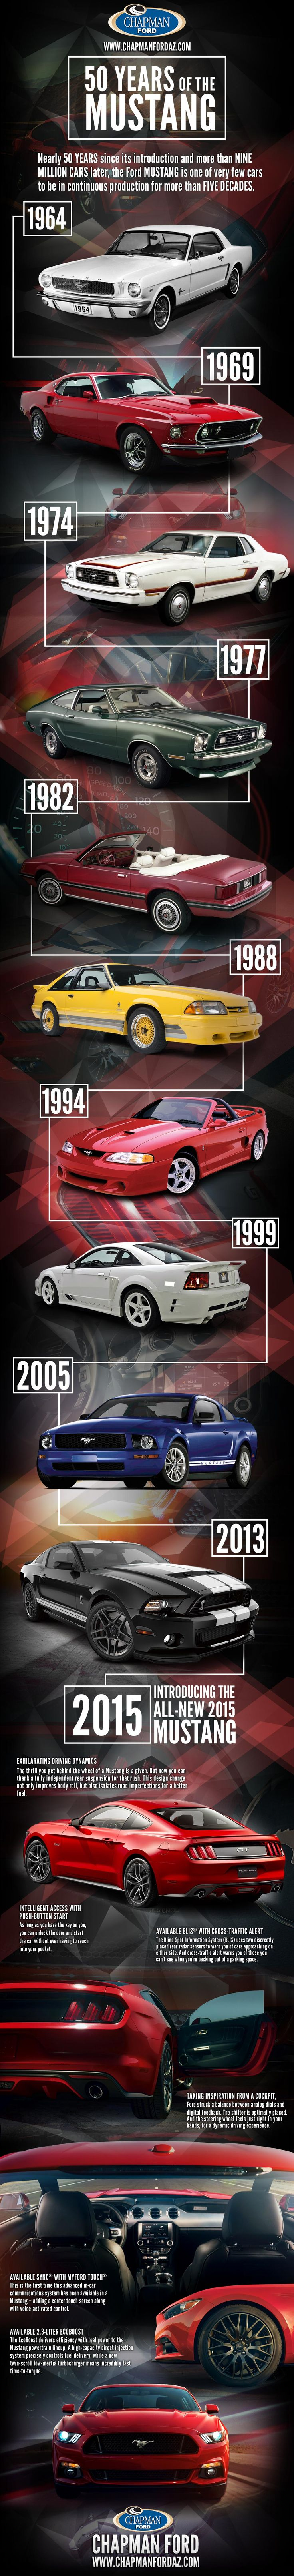 50 Years of the Ford Mustang. #Infographic #WhiteMarshFord Queens, NY oil change & free tire rotation $25 most cars wheel alignment $45 most cars 106 St Tire & Wheel with 5 shops http://www/106sttire.com/promotions  106-01 Northern Blvd open 24/7 718-446-6769 118-02 Merrick Blvd open 7 days in Jamaica, 718-276-4070 7920 Queens Blvd a/c recharge, repair, NYC inspections 718-458-2500 45-13 108 St open 7 days 718-271-9700 Queens Brooklyn $25 oil change & tire rotation